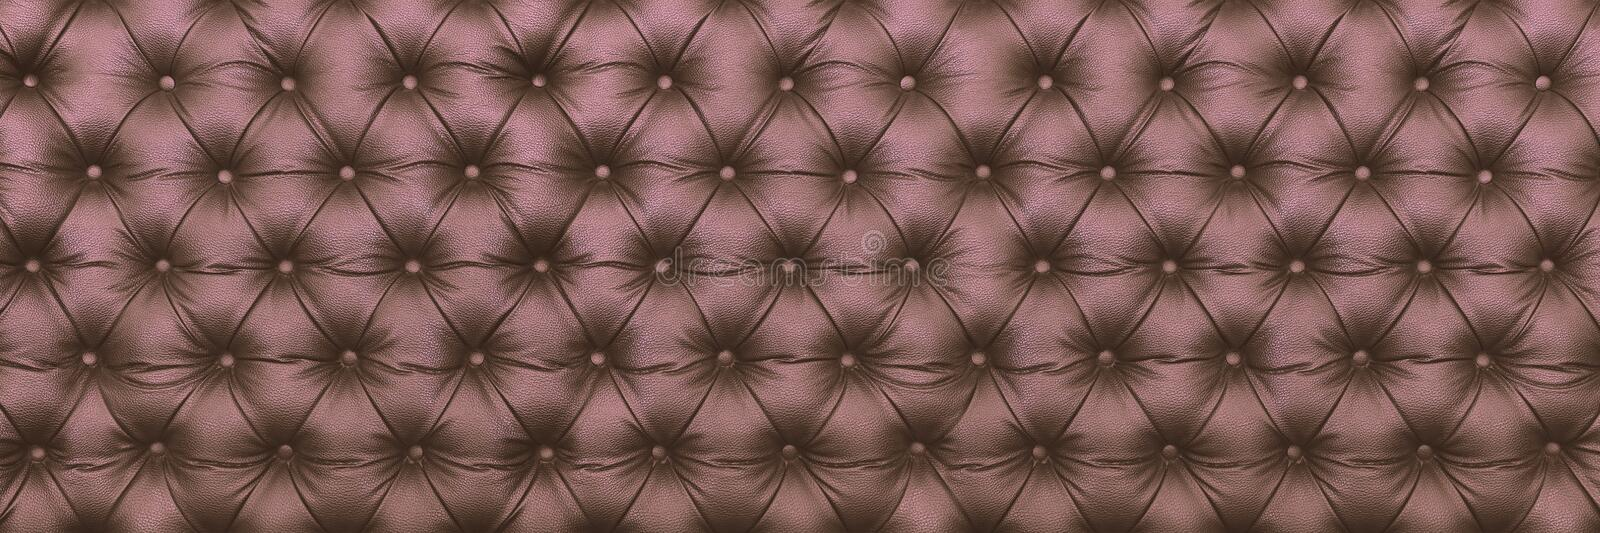 horizontal elegant brown leather texture with buttons for patter royalty free stock photos